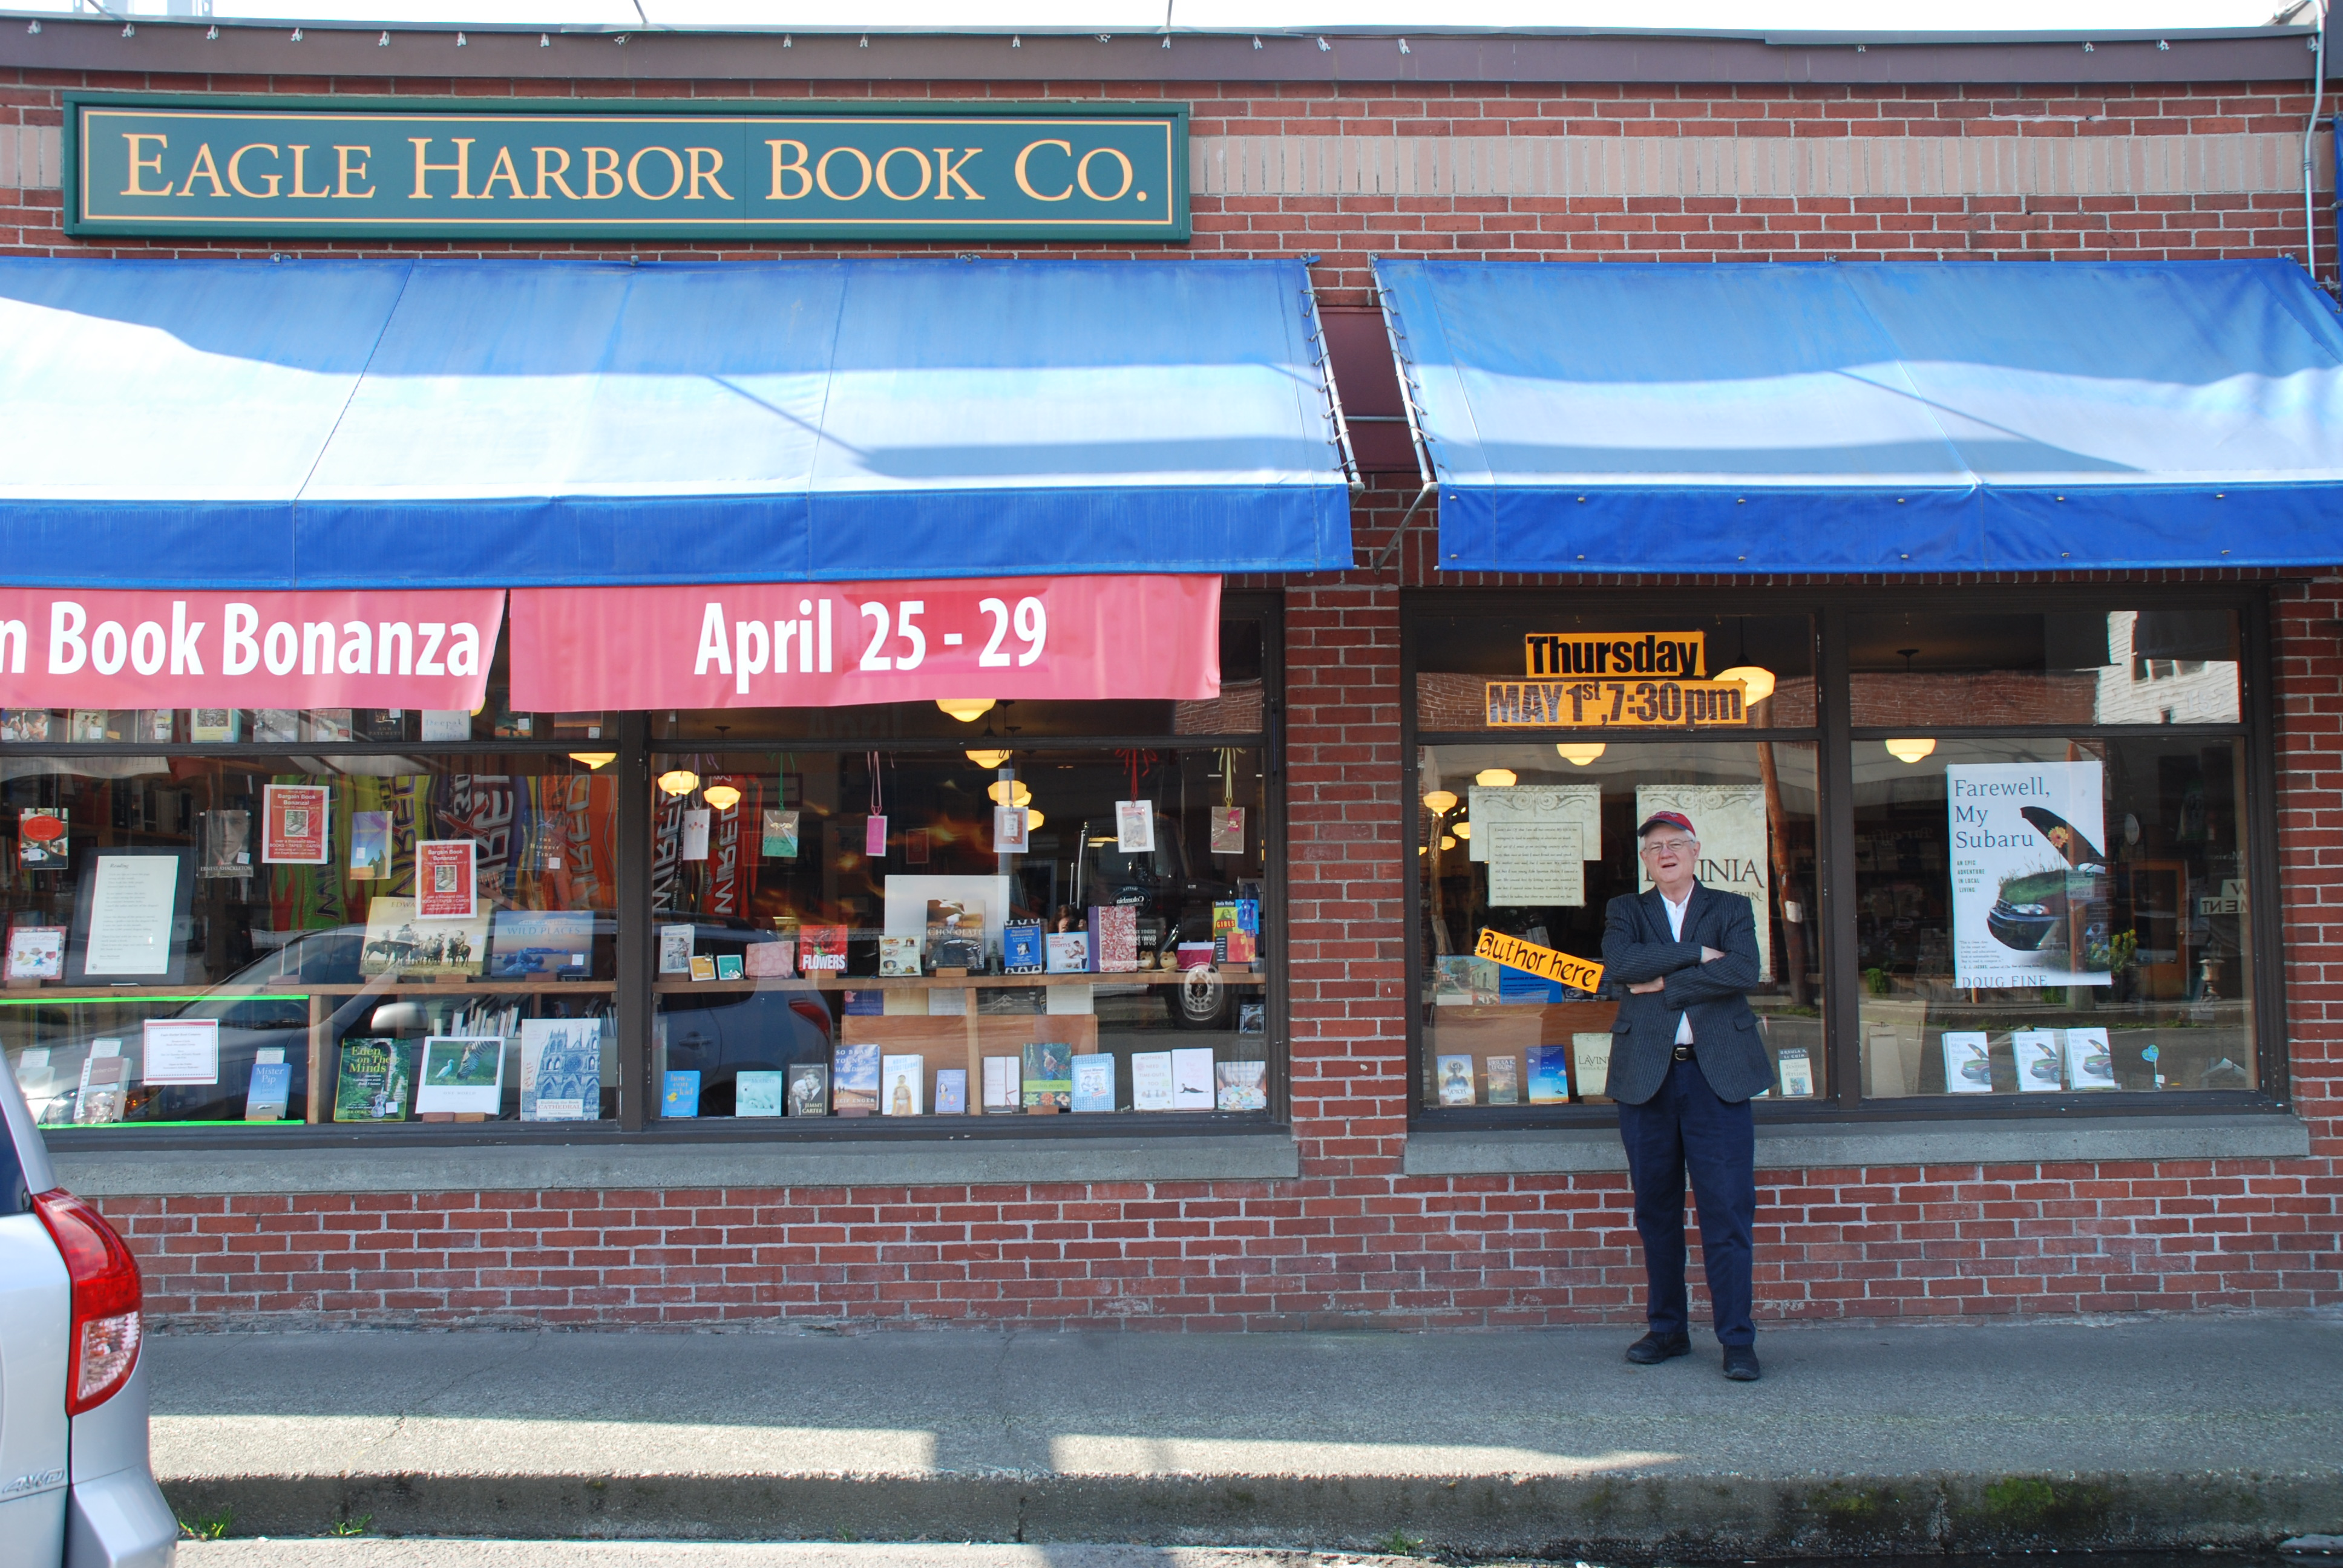 Roy Blount Jr wants you to buy books. Good plan.